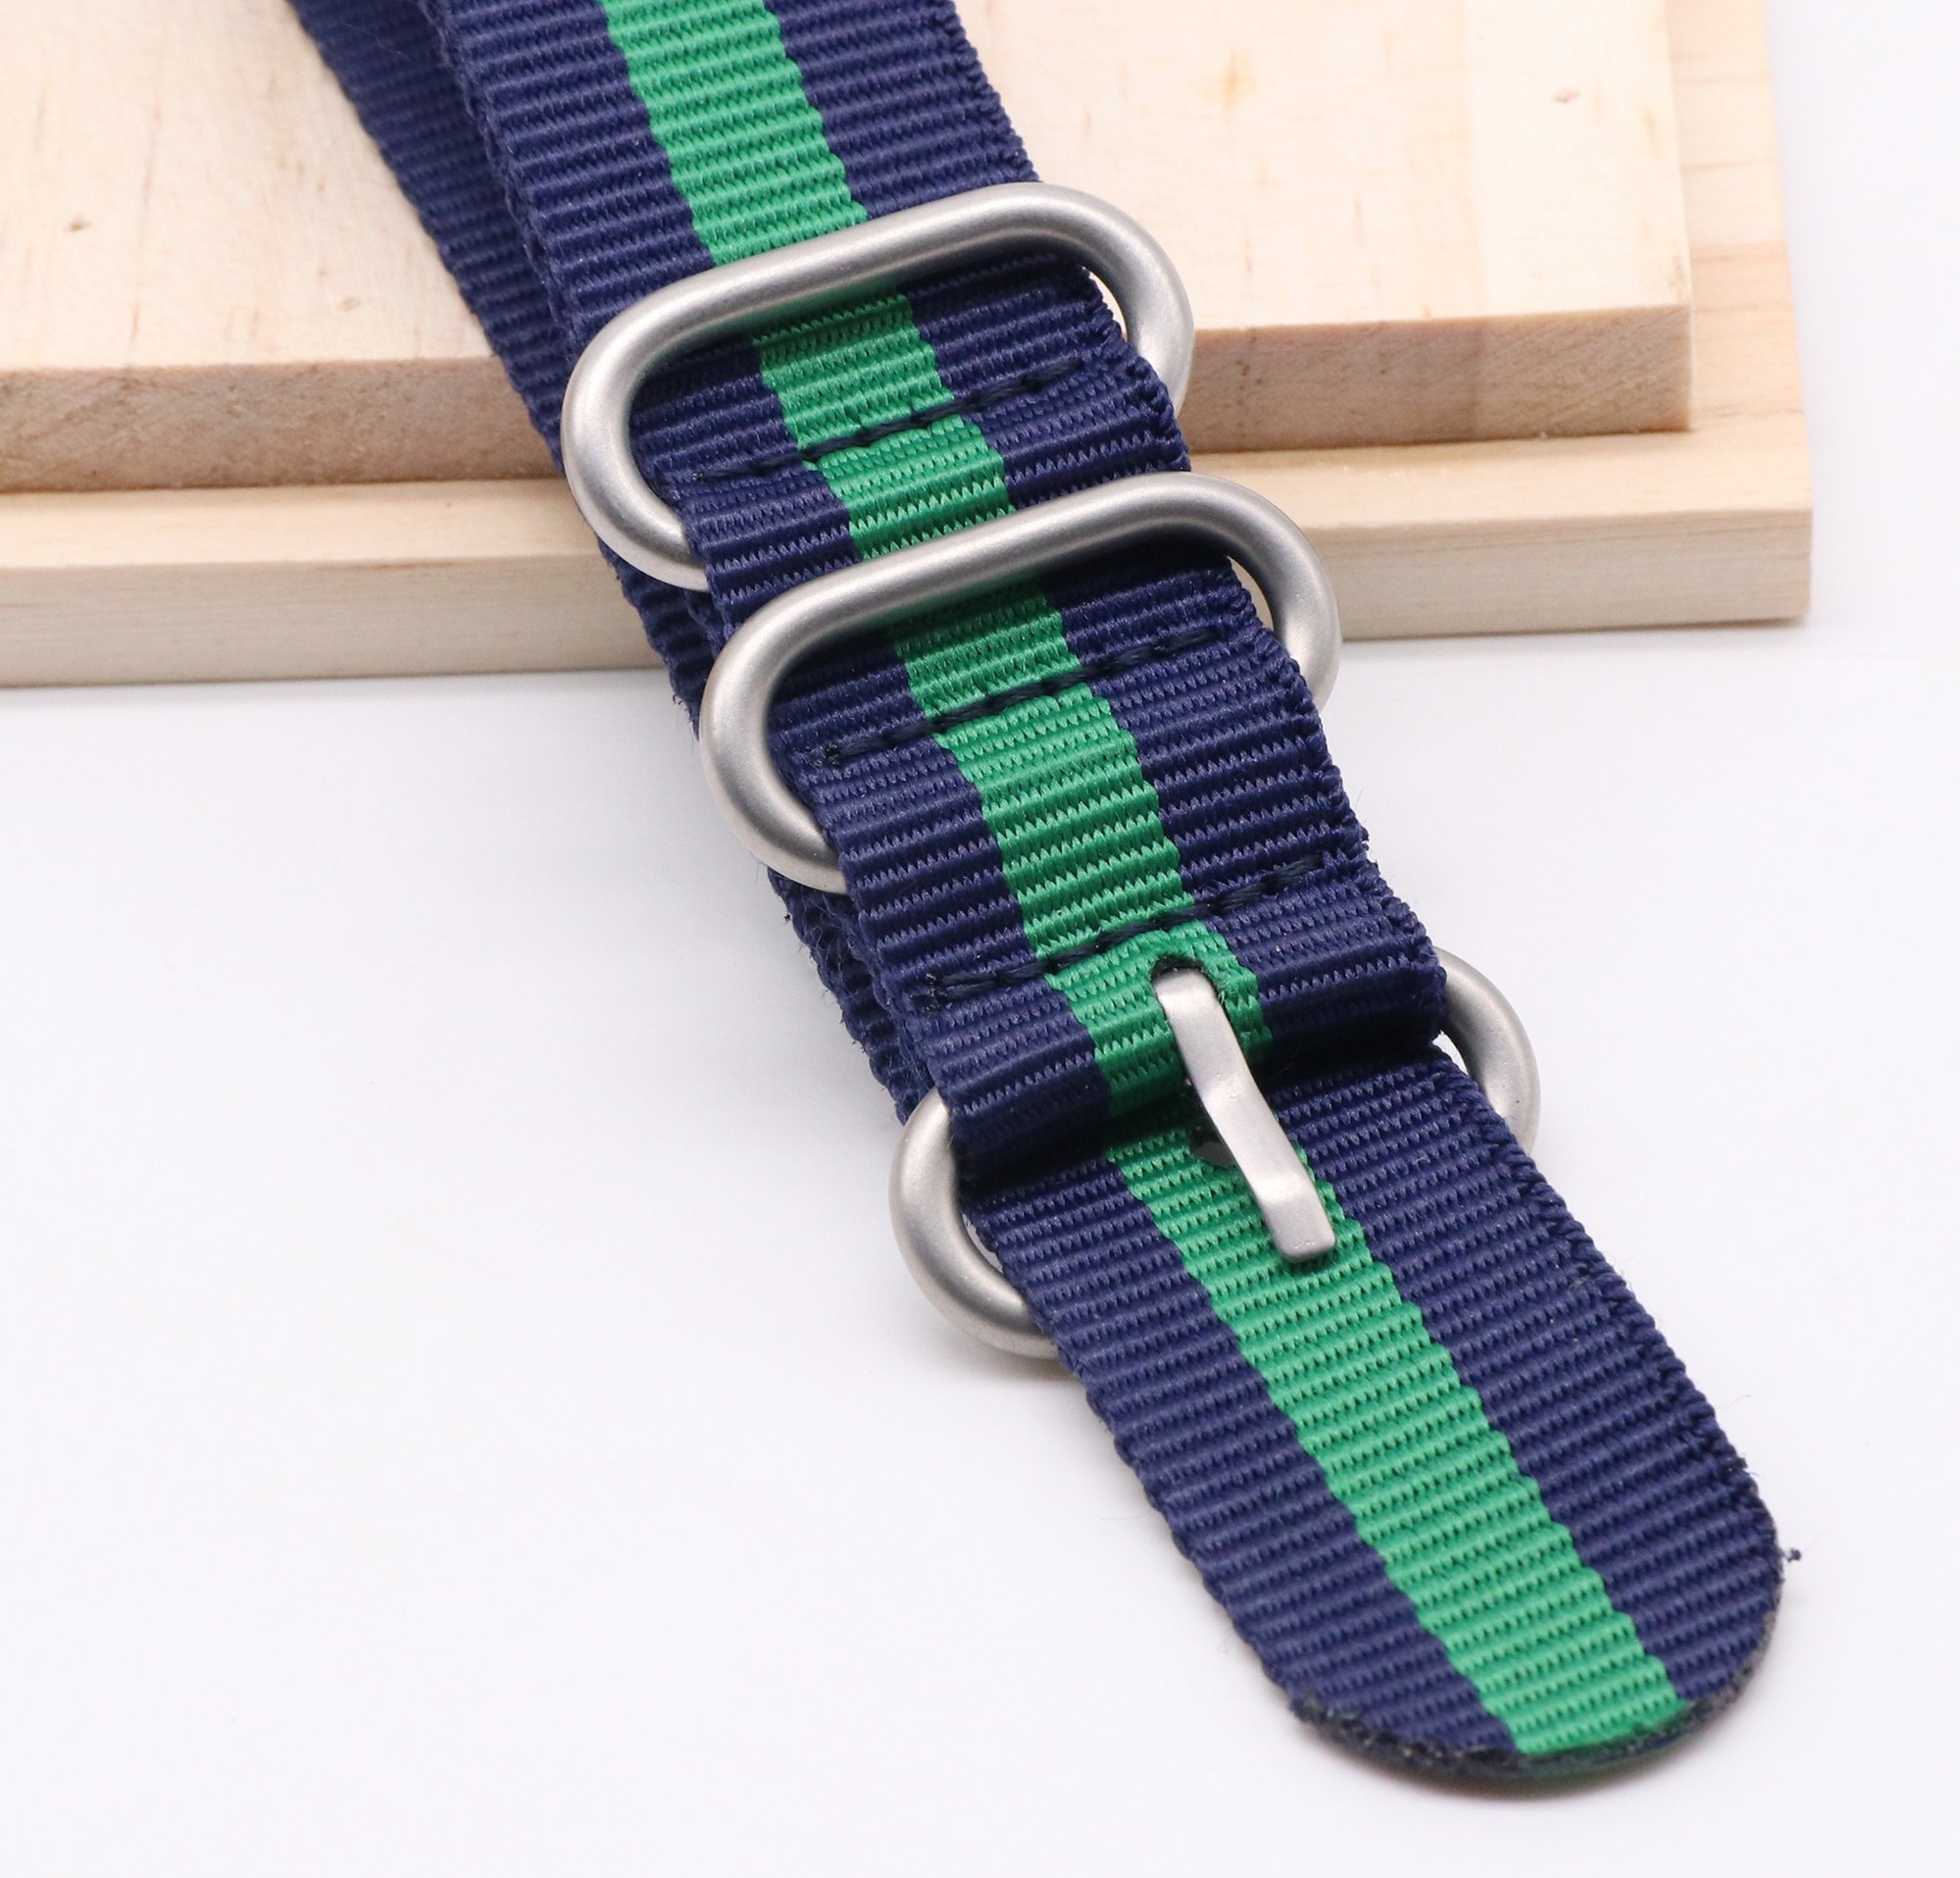 22mm Ballistic Nylon Watch Band with NATO Design 4 Pack by autulet (Image #4)